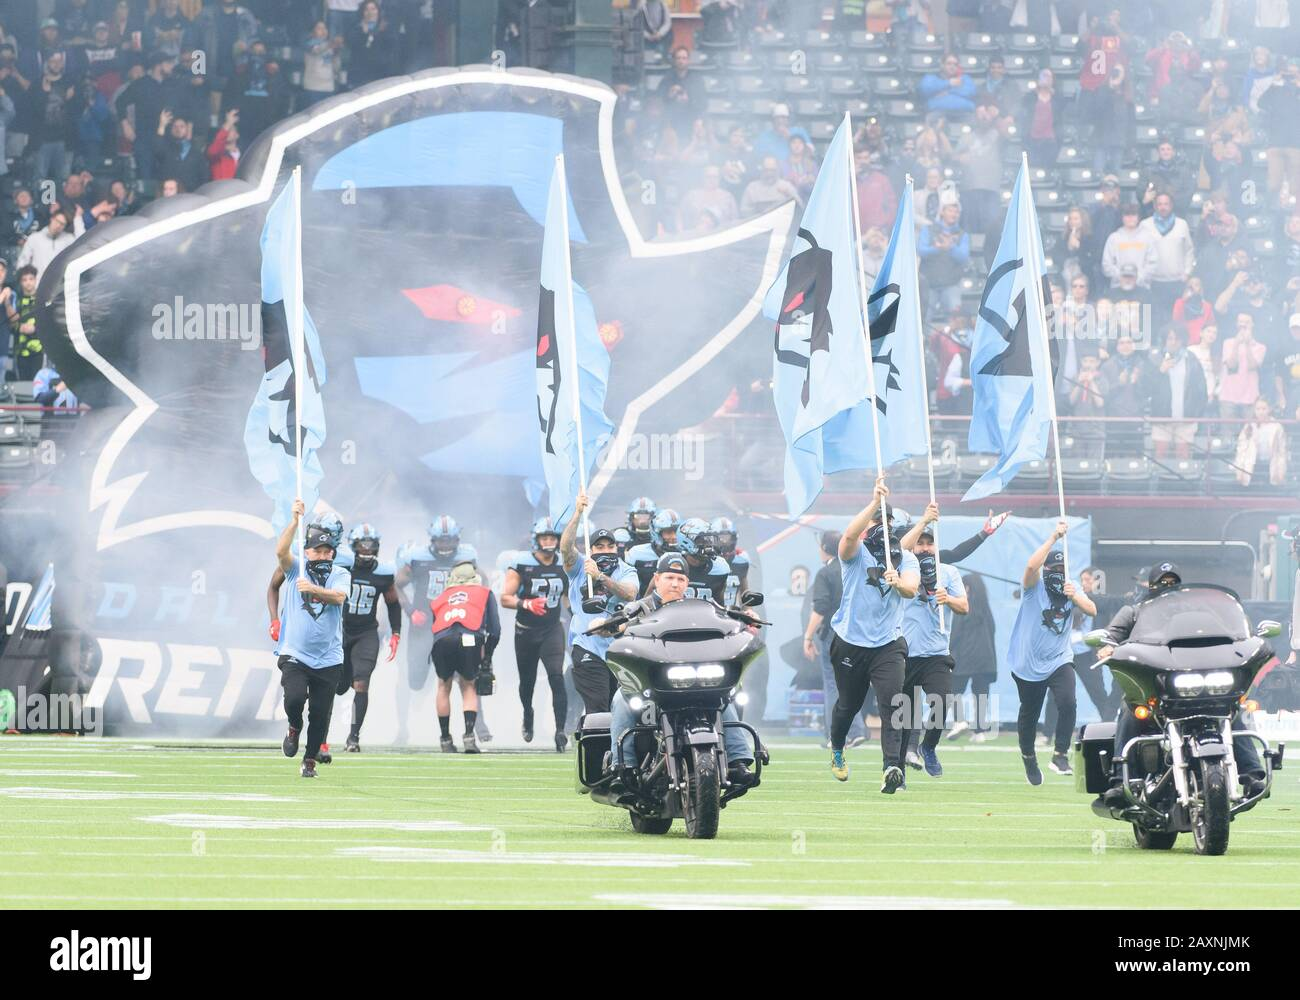 Arlington, Texas, USA. 9th Feb, 2020. Motorcycles and players come on the field before the 1st half of the XFL game between St. Louis Battlehawks and the Dallas Renegades at Globe Life Park in Arlington, Texas. Matthew Lynch/CSM/Alamy Live News Stock Photo